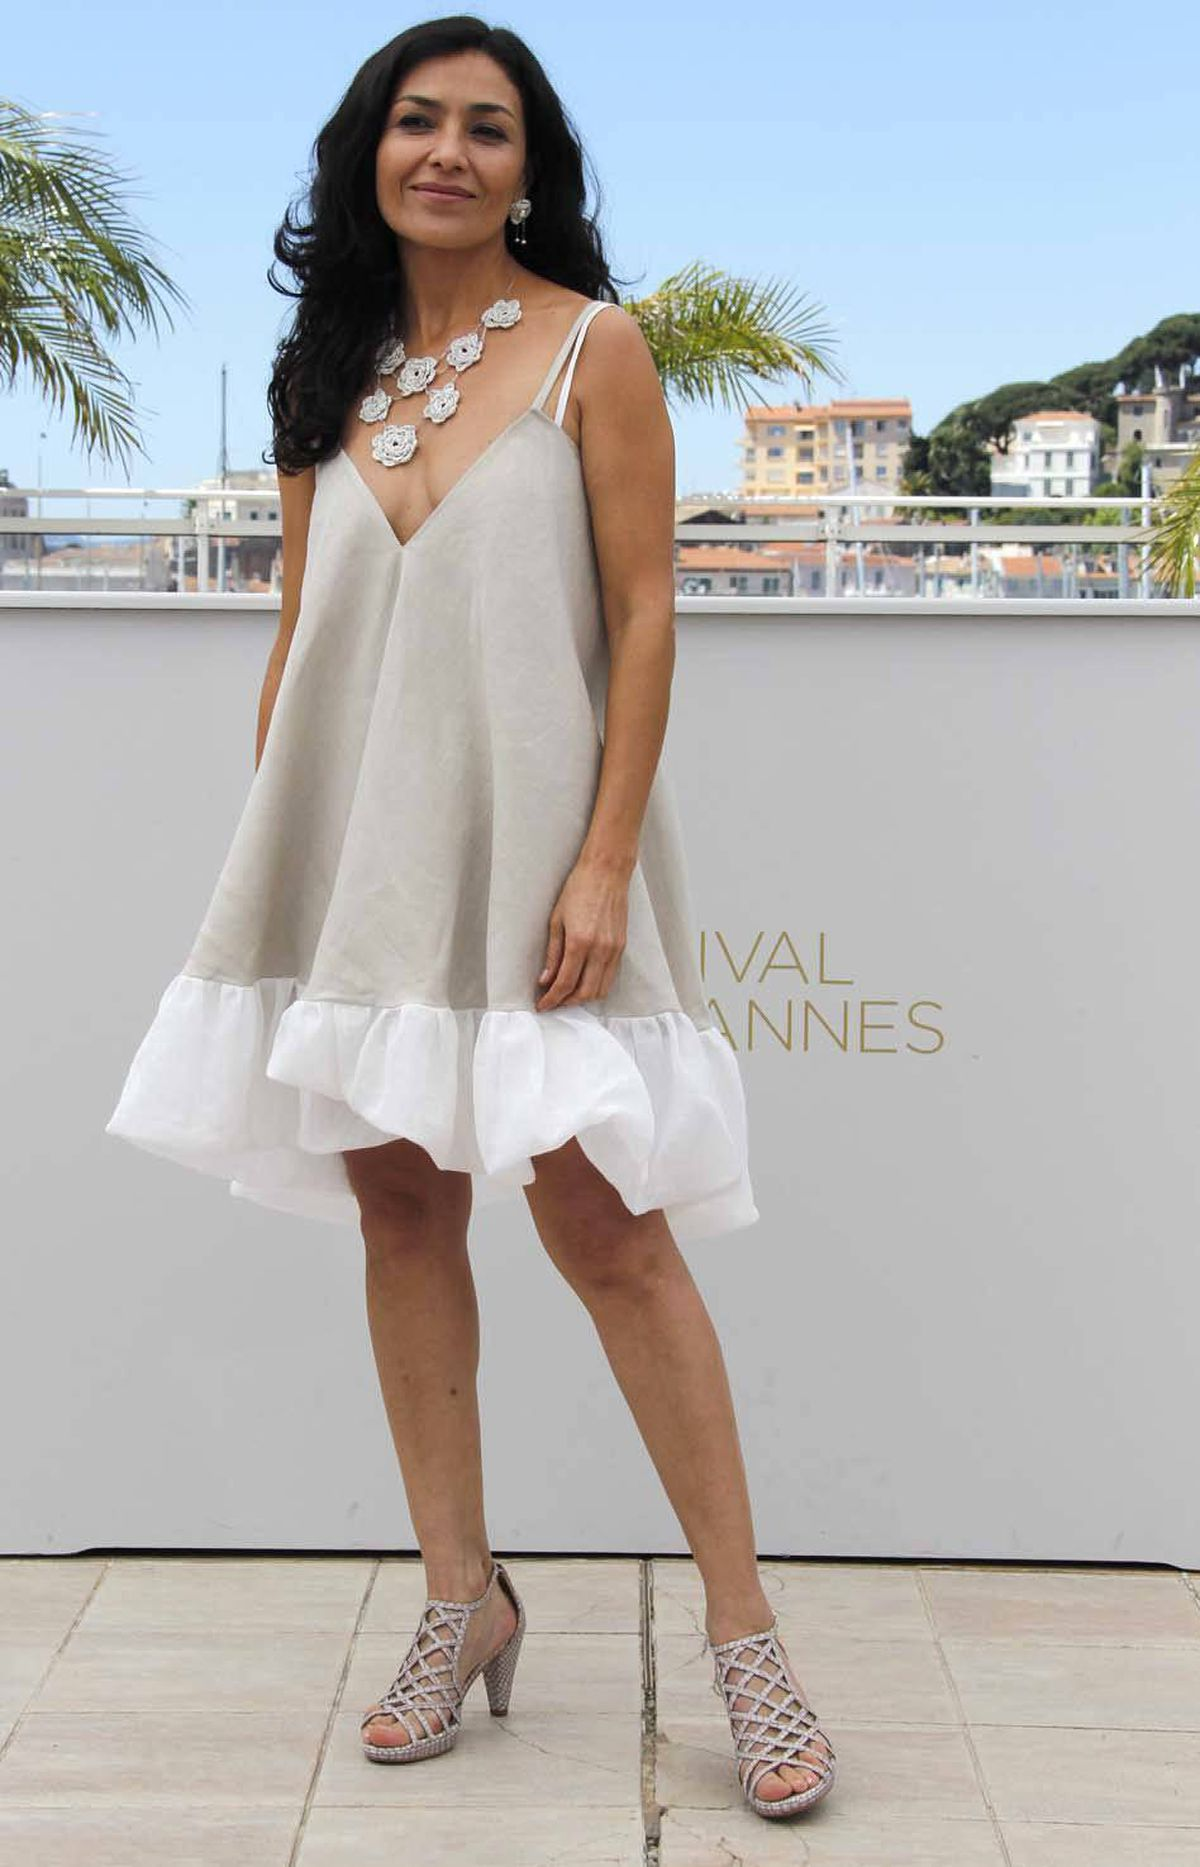 Mexican actress Dolores Heredia at the Cannes Film Festival on Tuesday.